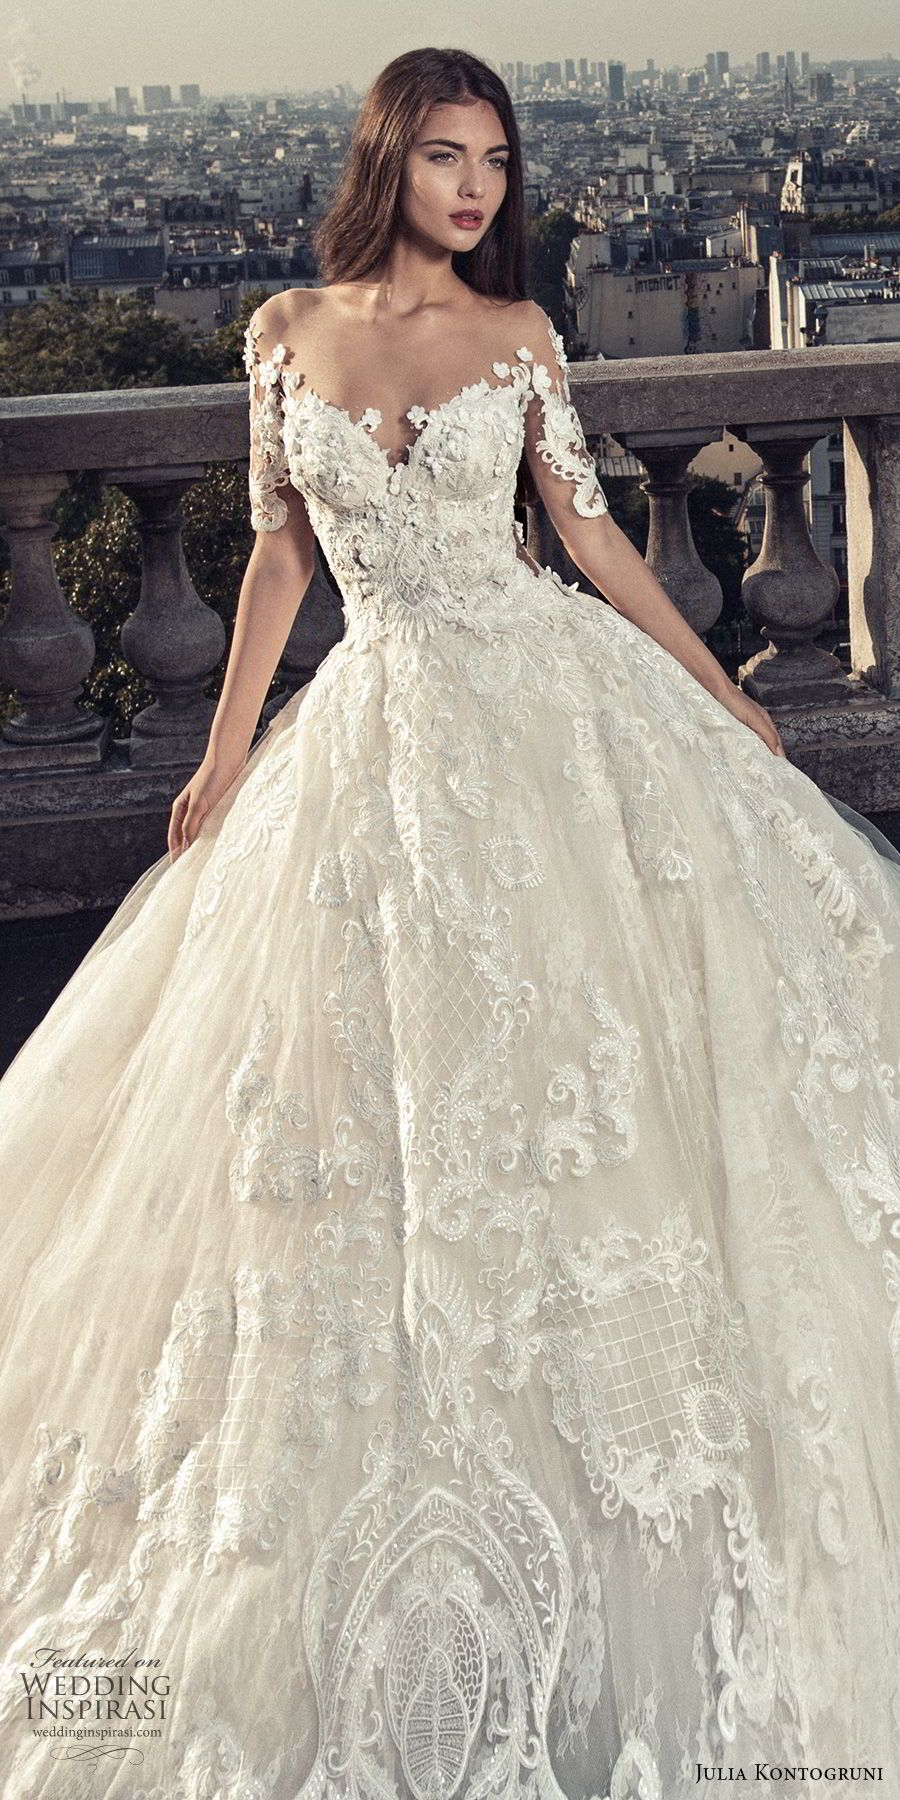 Julia kontogruni wedding dresses u ucparisud bridal collection